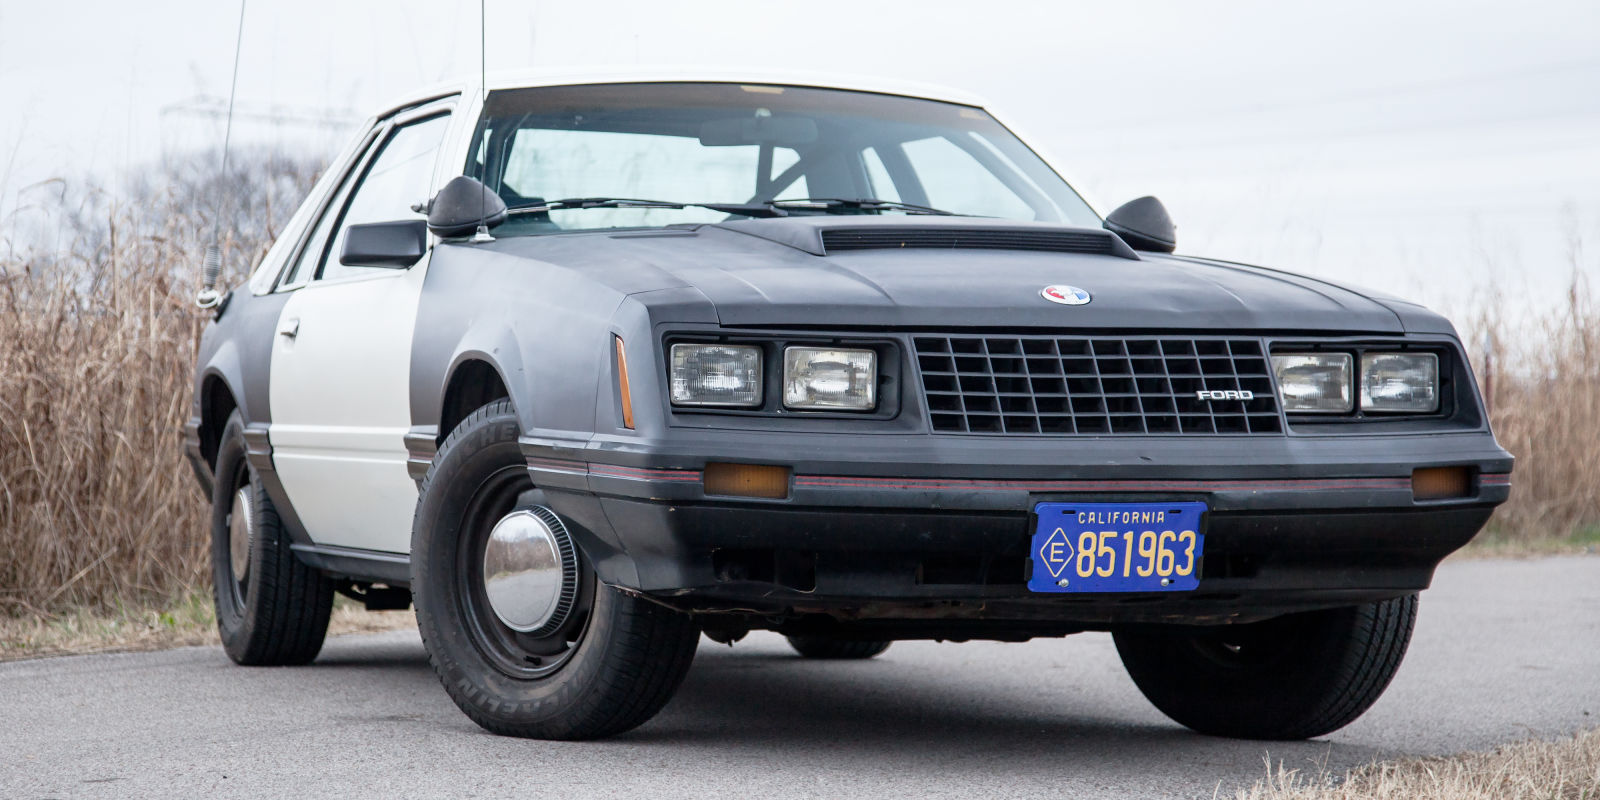 The Guys At Road And Track Drove The Very First Mustang Special Service Patrol Car Ever And We're Jealous